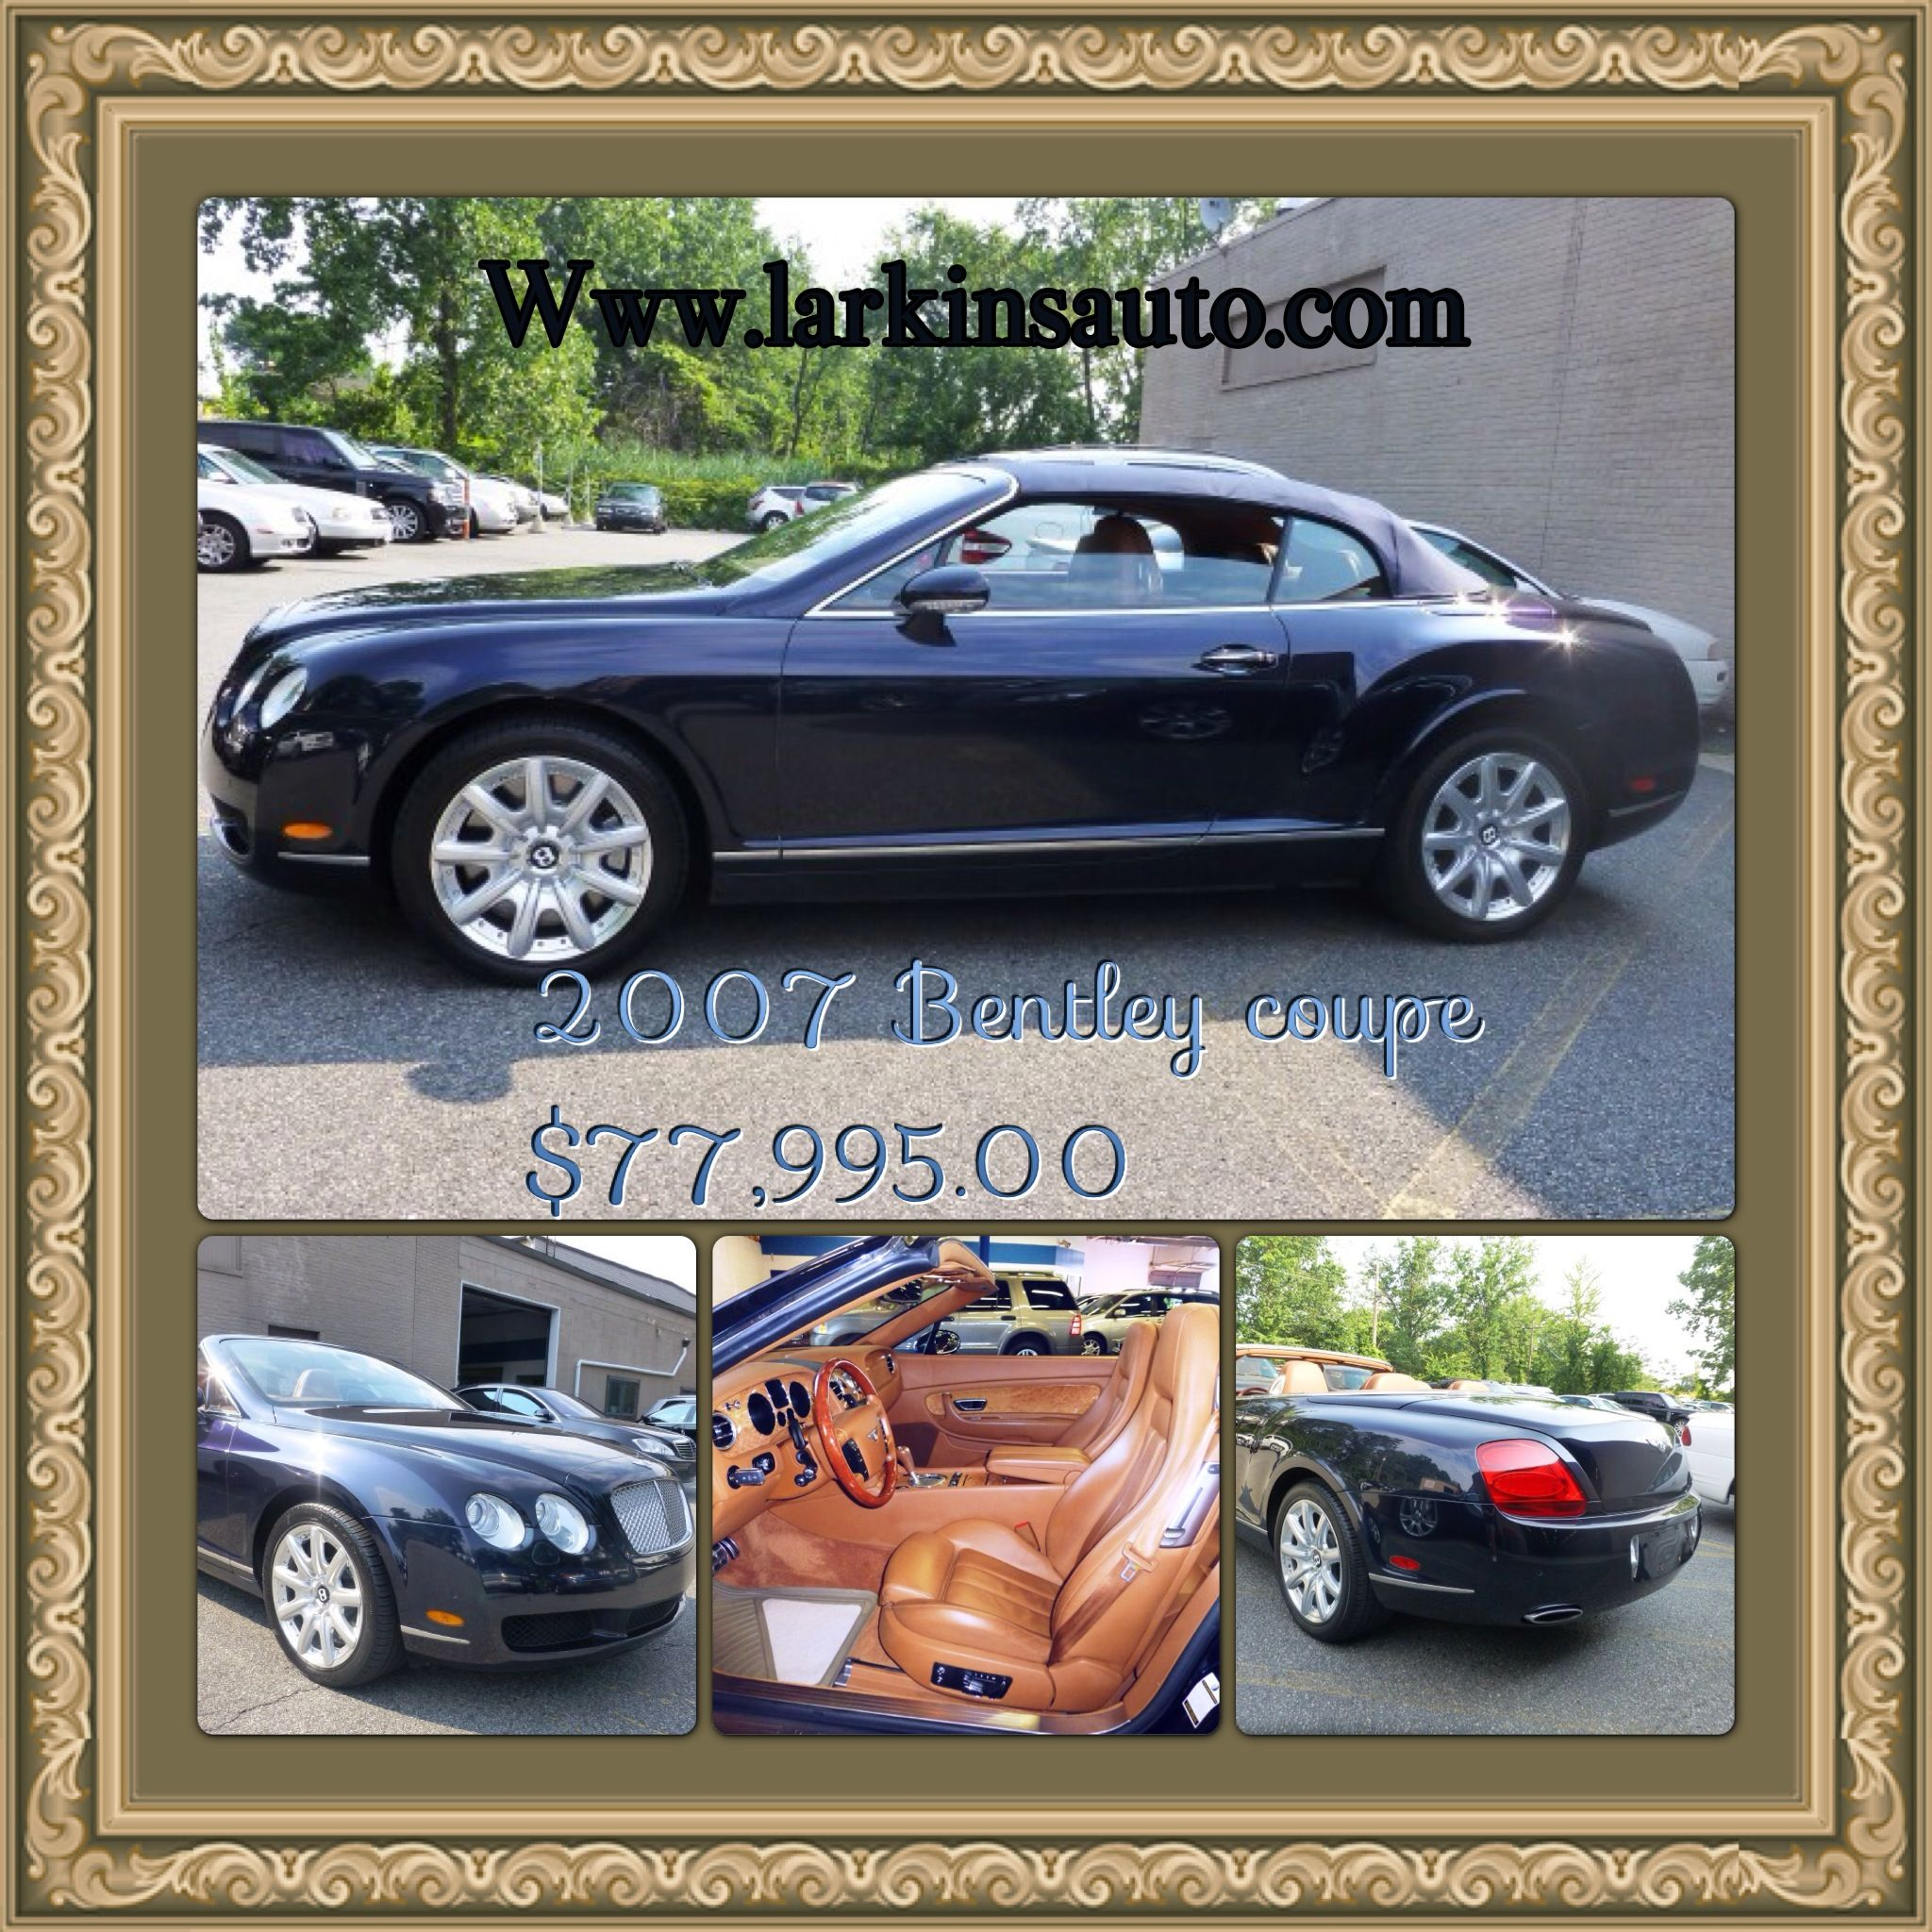 Http://www.rcatena.com/web/used/Bentley-Continental-GT